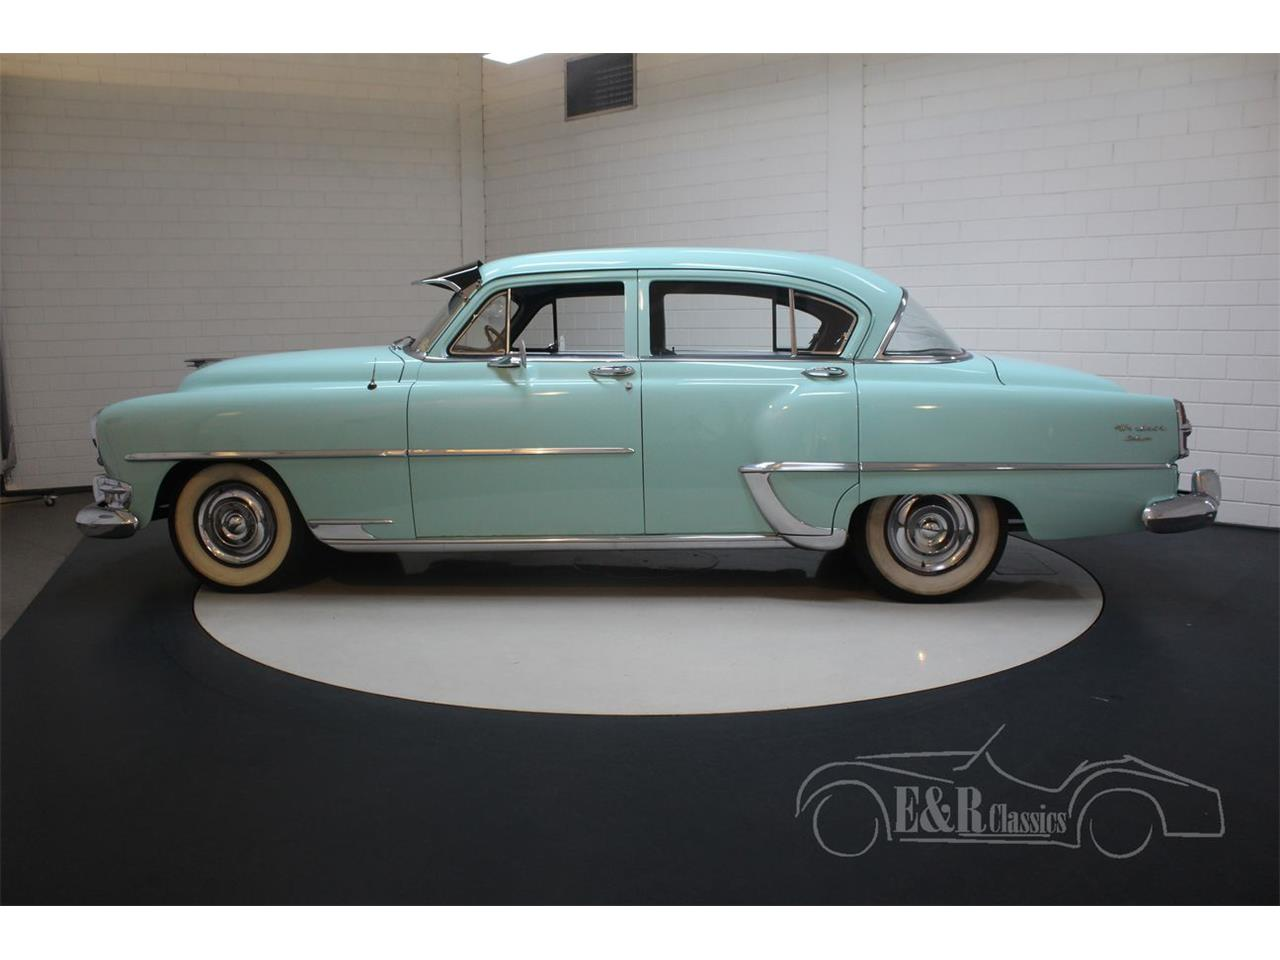 Large Picture of '54 Chrysler Windsor located in Waalwijk noord brabant - $19,000.00 - QJZL